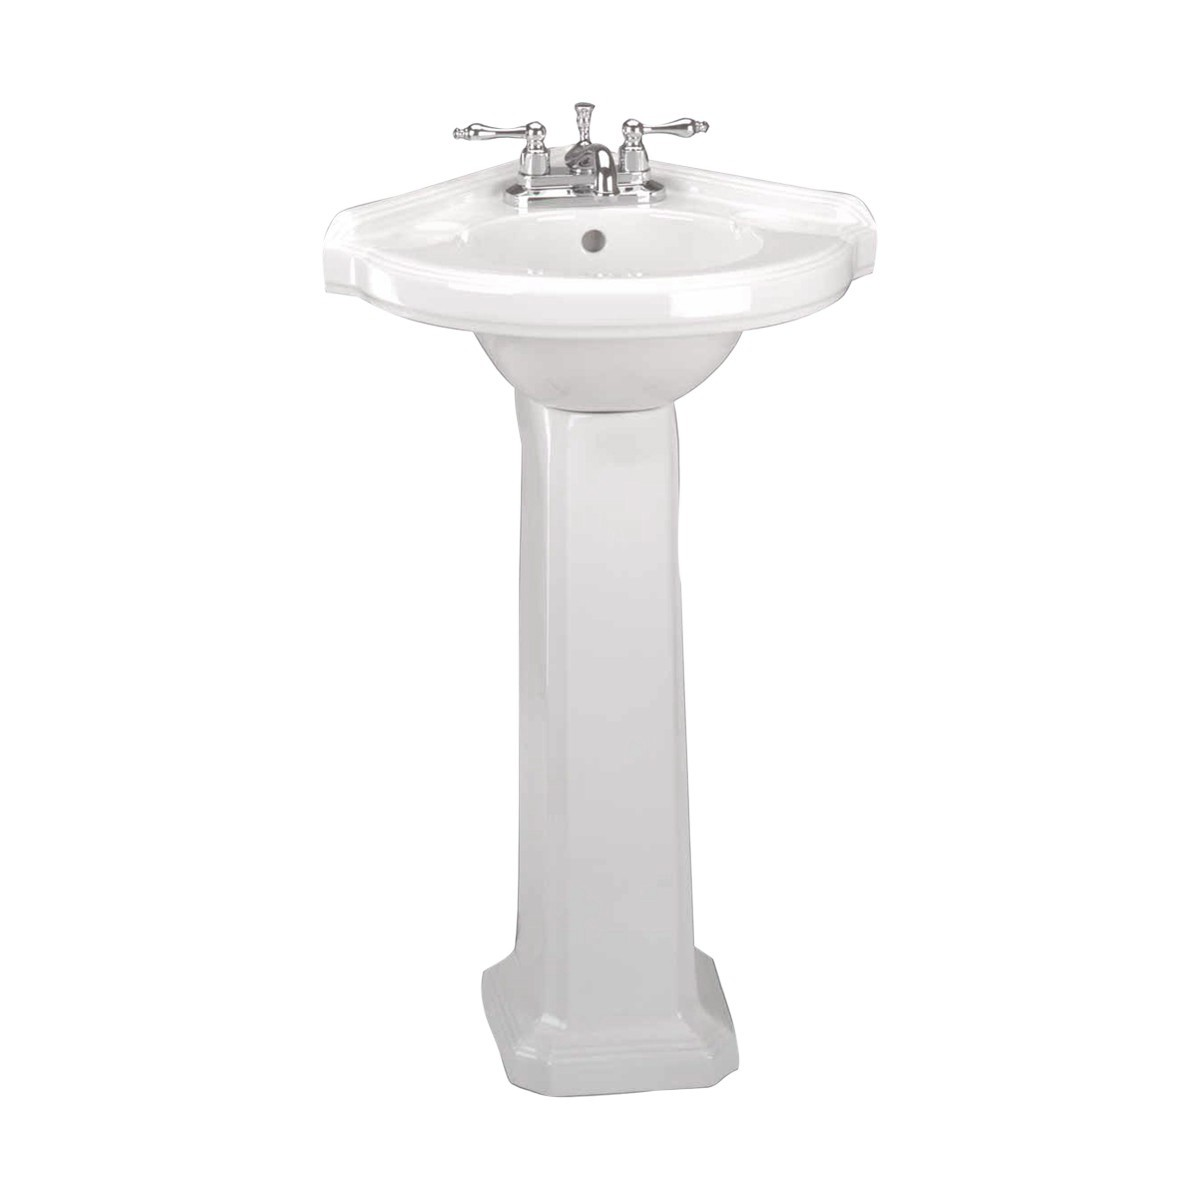 ... U003cPREu003eSmall Corner Bathroom White Pedestal Sink Vitreous China ...